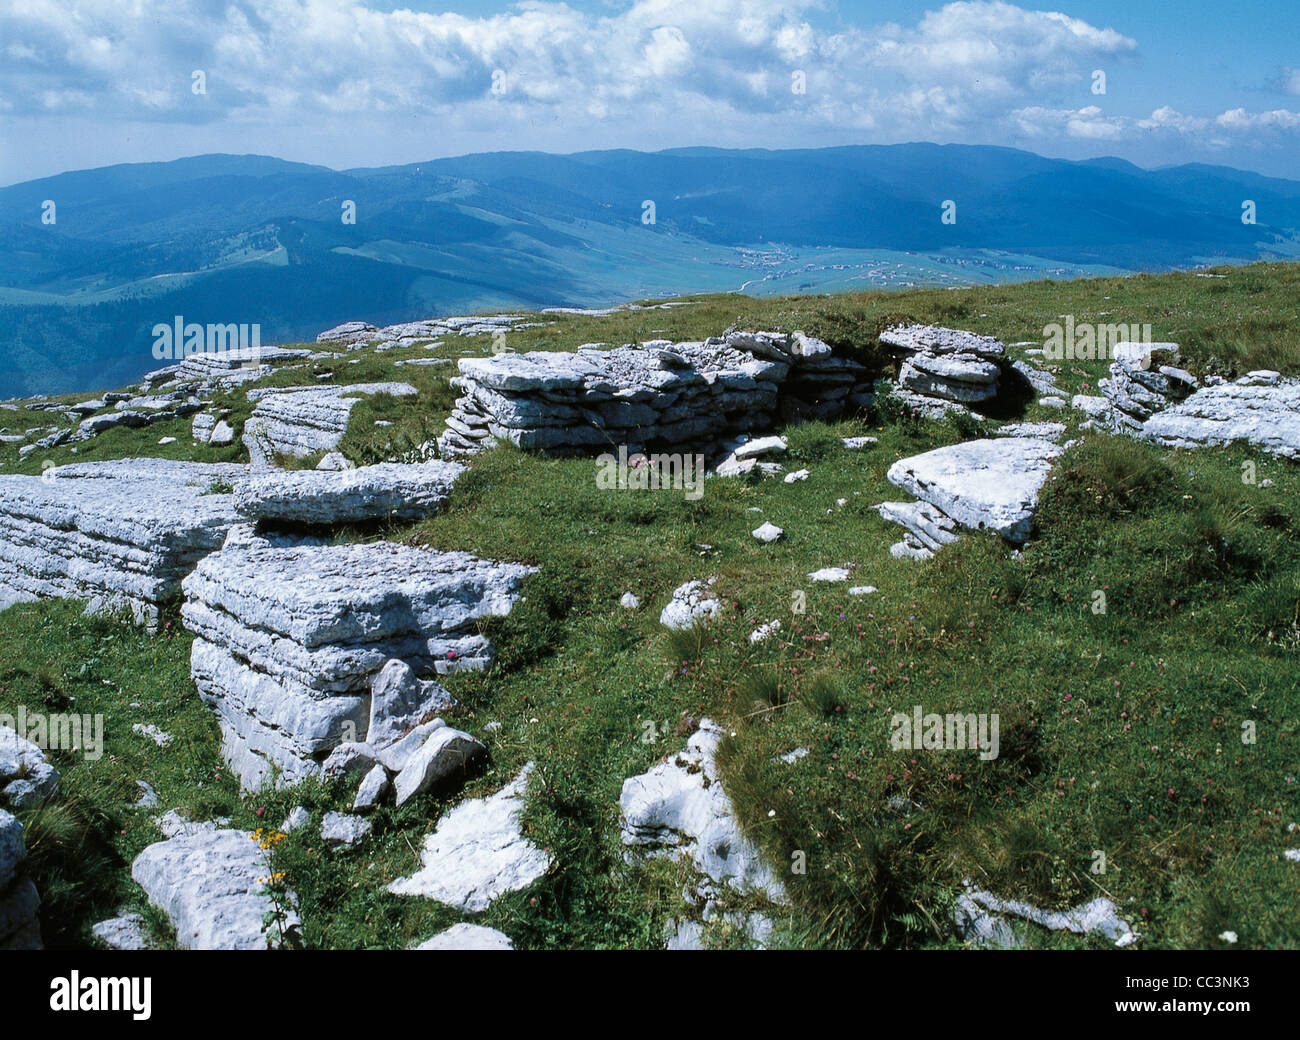 Seven Towns Of Veneto Plateau Remains Of Trenches - Stock Image